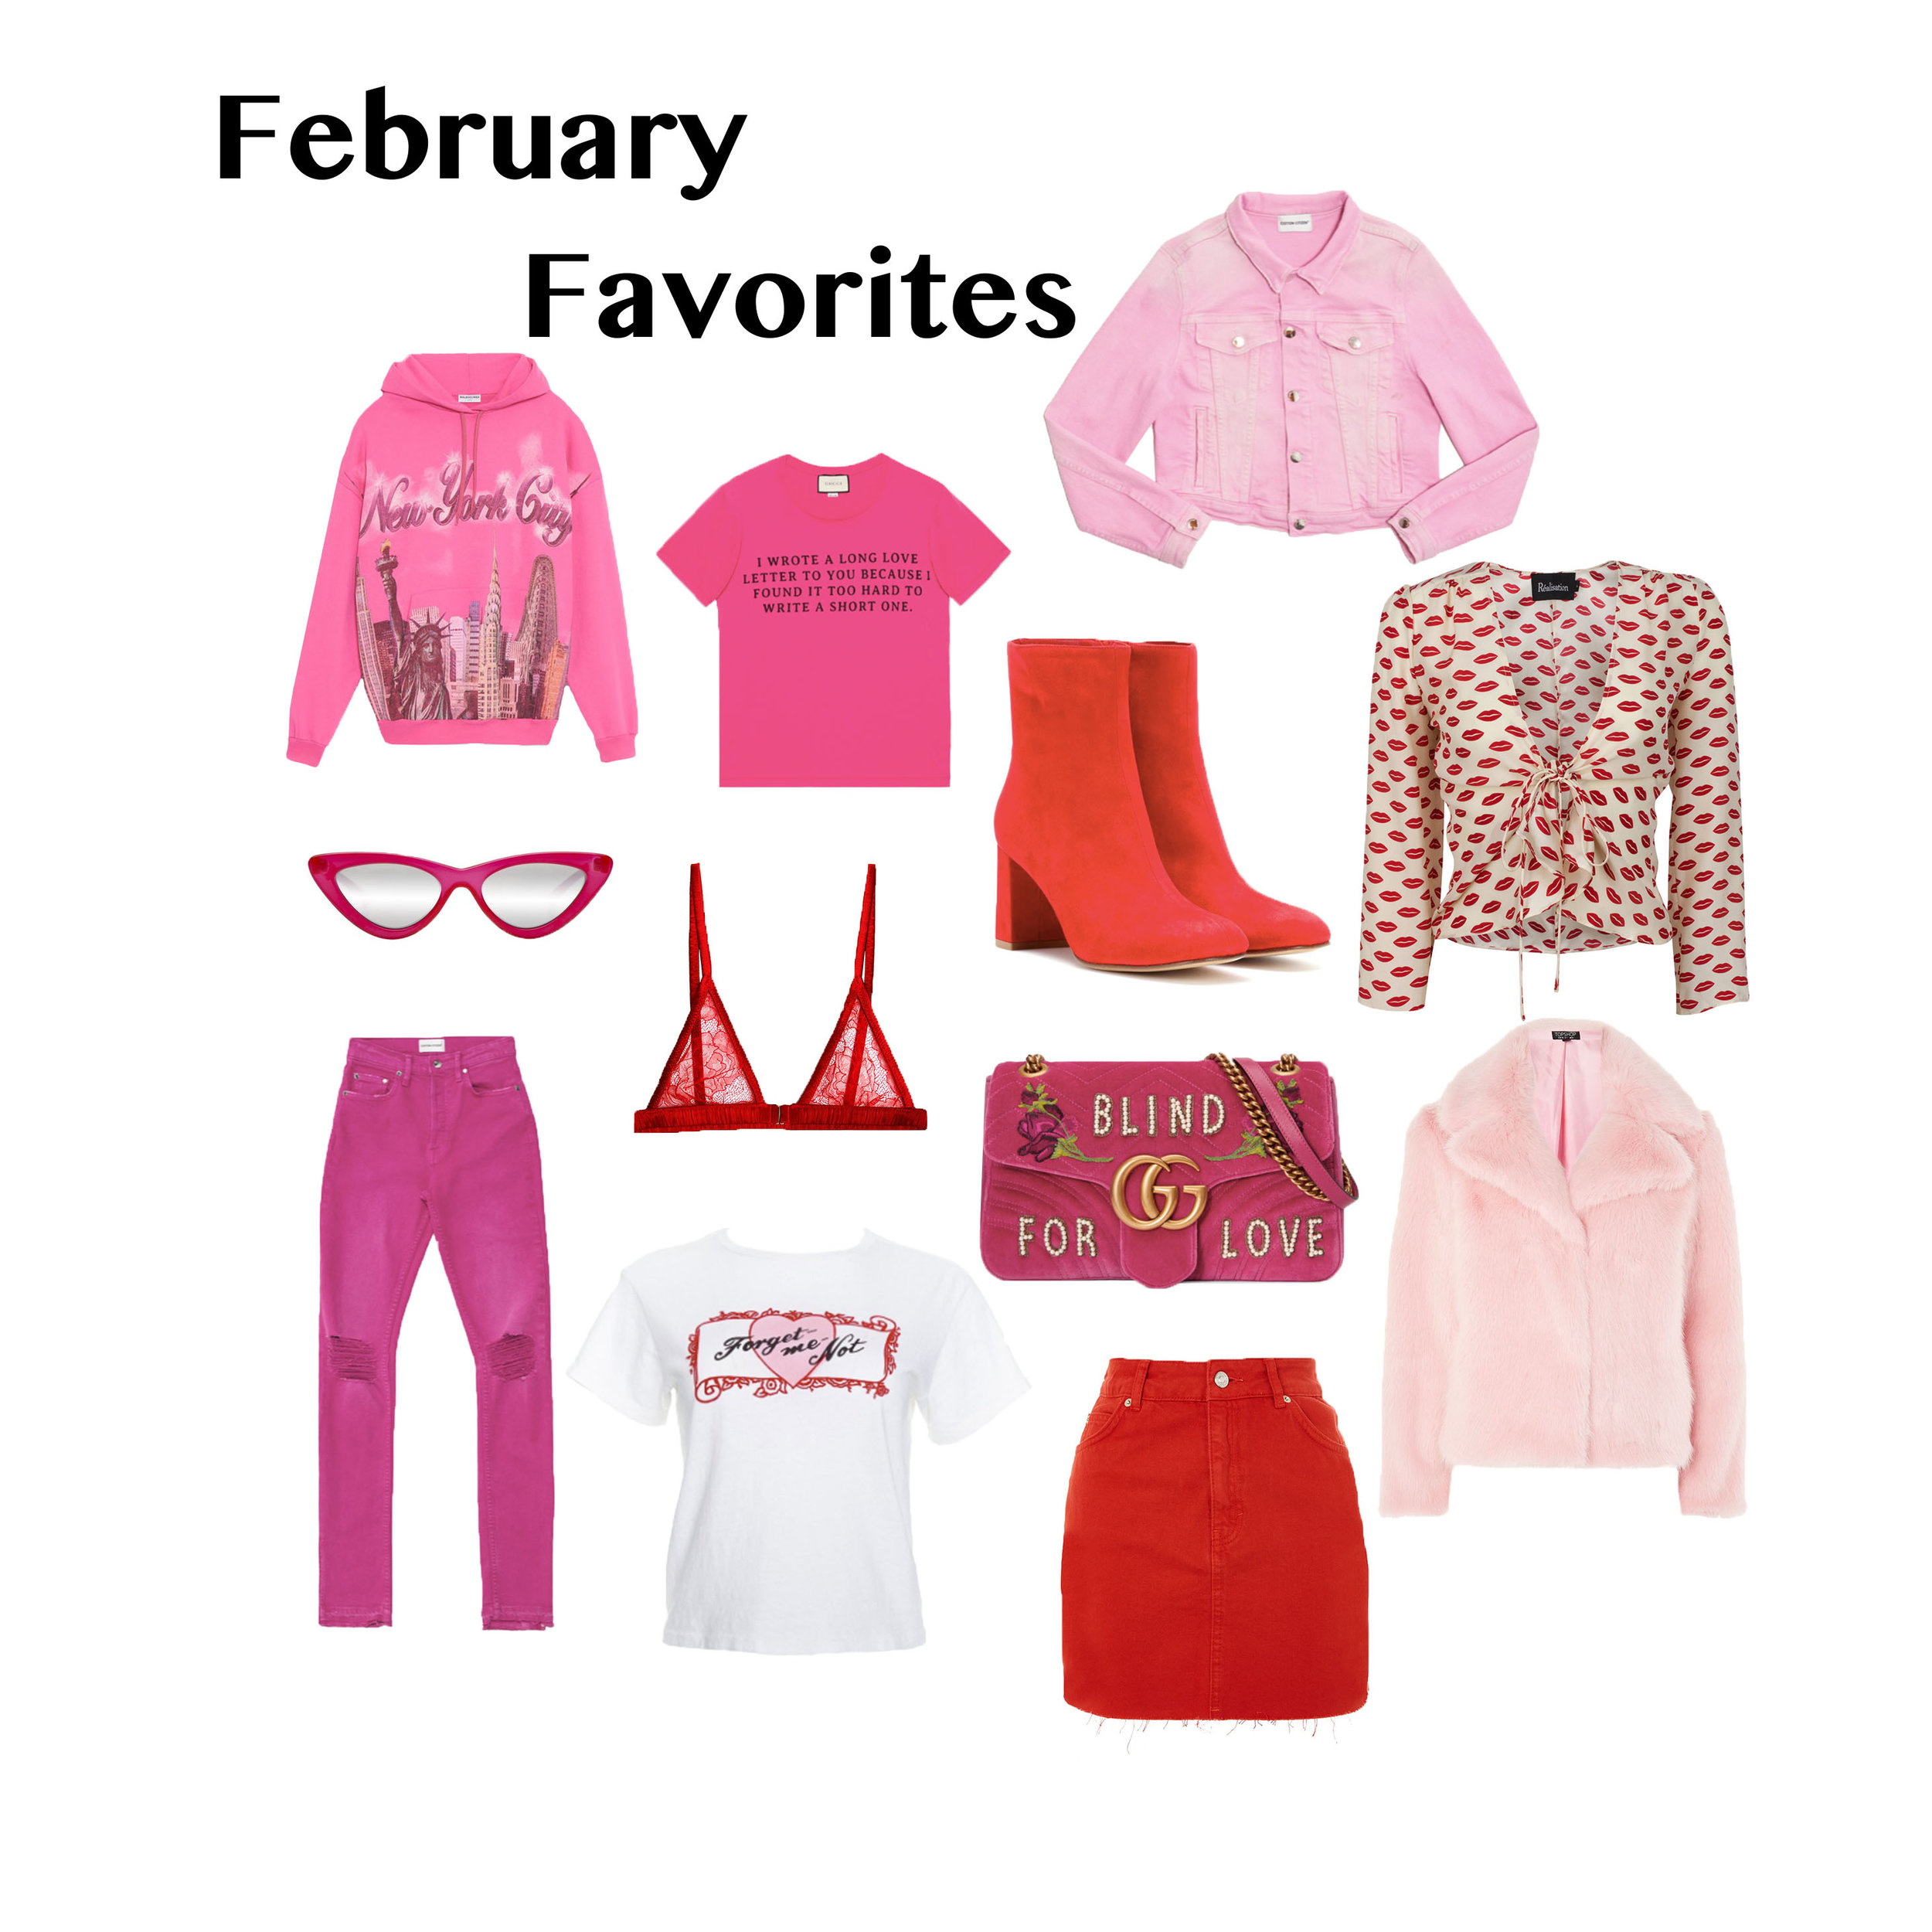 """Here are my favorites for February:  1.  Balenciaga """"New York City"""" Sweatshirt - the perfect statement hoodie to dress up or down  2.  Gucci """"Love Letter"""" T-Shirt - an everyday tee with a super cute saying  3.  Cotton Citizen """"Crop Denim Jacket"""" - one of my favorite pieces of the new colored denim collection from Cotton Citizen  4.  Le Specs x Adam Selman """"The Last Lolita"""" Sunglasses - some of the hottest sunglasses of the season in an unexpected color  5.  Fleur du Mal """"Rose Lace Triangle Bra"""" - these bralettes are so comfortable, and the red lace is perfect for v-day  6.  Maryam Nassir Zadeh """"Agnes Ankle Boots"""" - red ankle boots are a must this season, and these particular ones are on major sale  7.  Realisation Par """"Bianca Top"""" - a really unique style in the cutest print  8.  Cotton Citizen """"High Split Jeans"""" - these jeans are so flattering and in the coolest color  9.  Re/done """"Forget Me Not Tee"""" - these tees are in constant rotation in my wardrobe, and this brand new graphic came just in time for v-day  10.  Gucci """"GG Marmont Bag"""" - the prettiest version of a timeless style  11.  Topshop """"Moto Denim Skirt"""" - the newest color addition to my many denim skirts  12.  Topshop """"Camilla Luxe Faux Fur Jacket"""" - 2 of my favorite things (fur and pink) combined make this jacket irresistable    Find everything in my closet! Xx"""